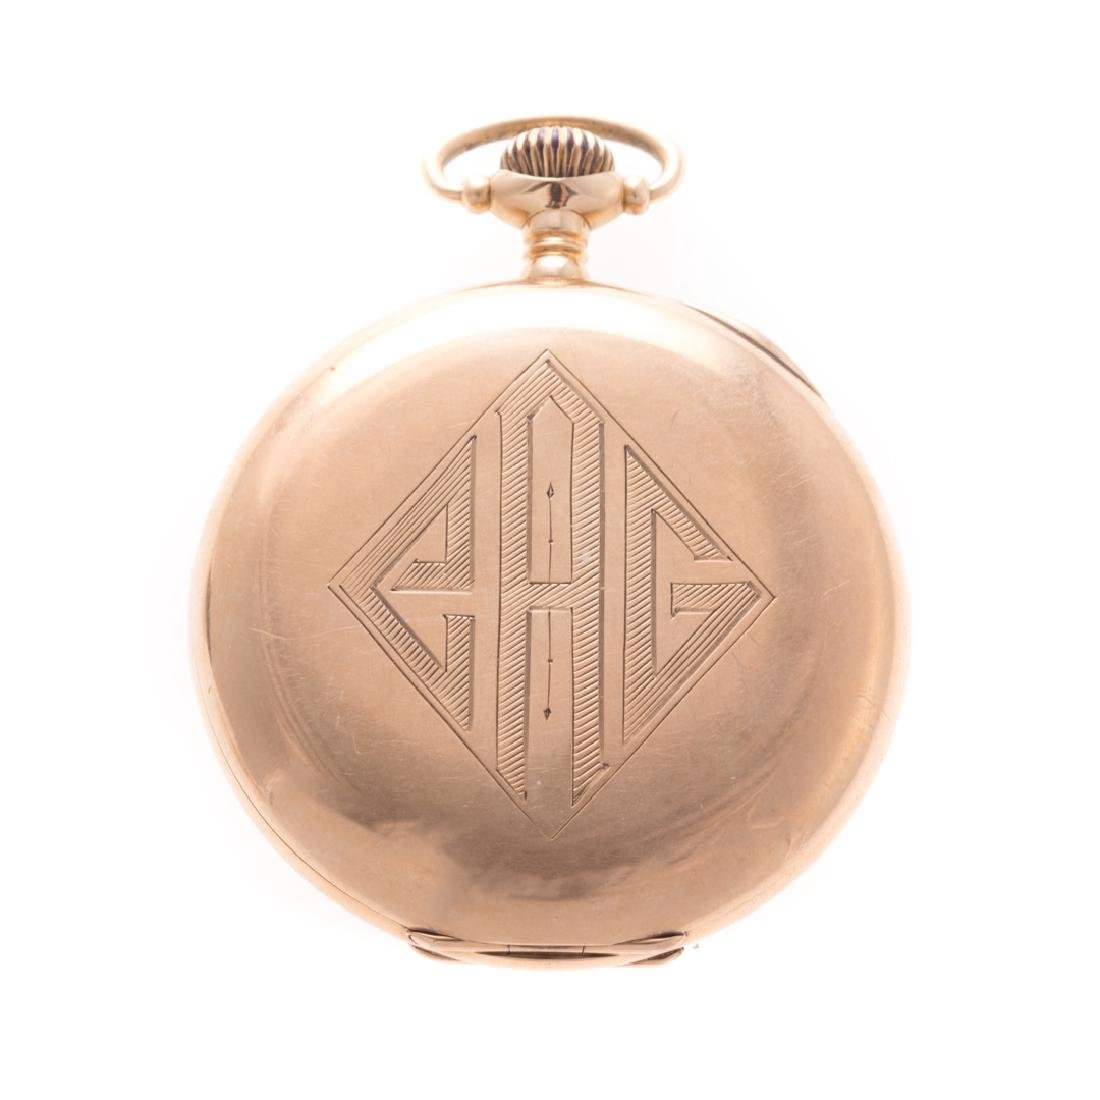 A Gentlemen's Waltham Pocket Watch in 14K - 2